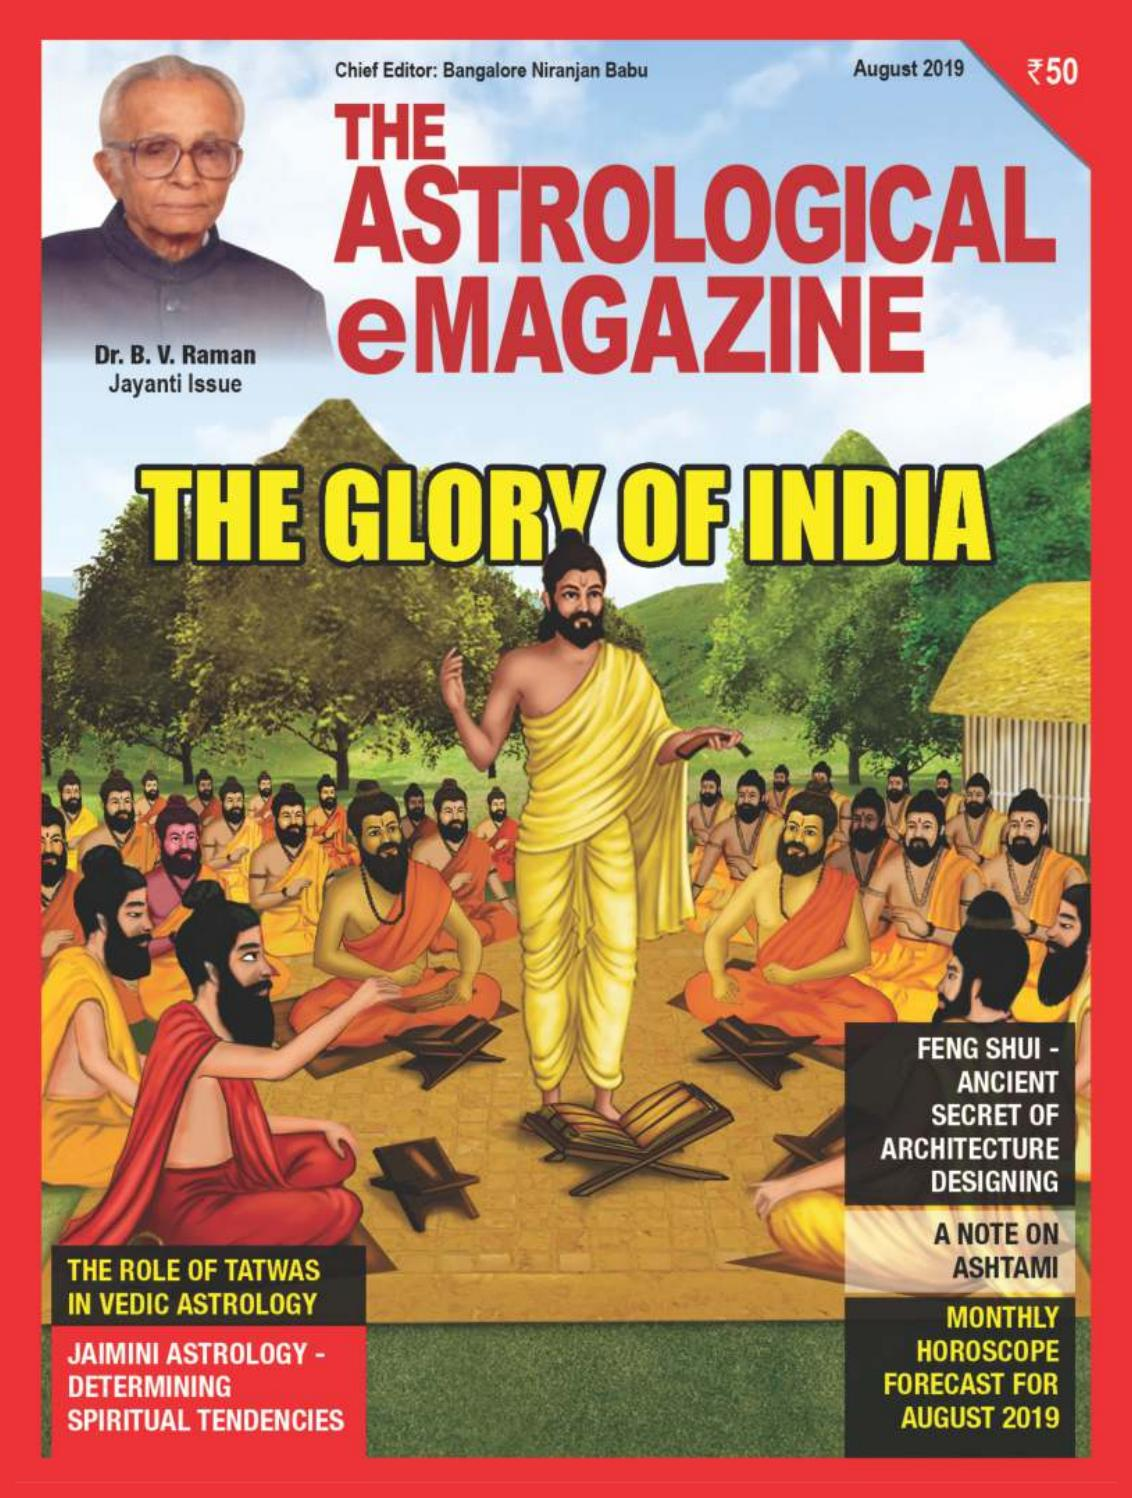 The Astrological Emagazine August 2019 By Bangalore Niranjan Babu Issuu Find all the information about love, health, money and career related to your zodiac sign in our monthly horoscope. issuu